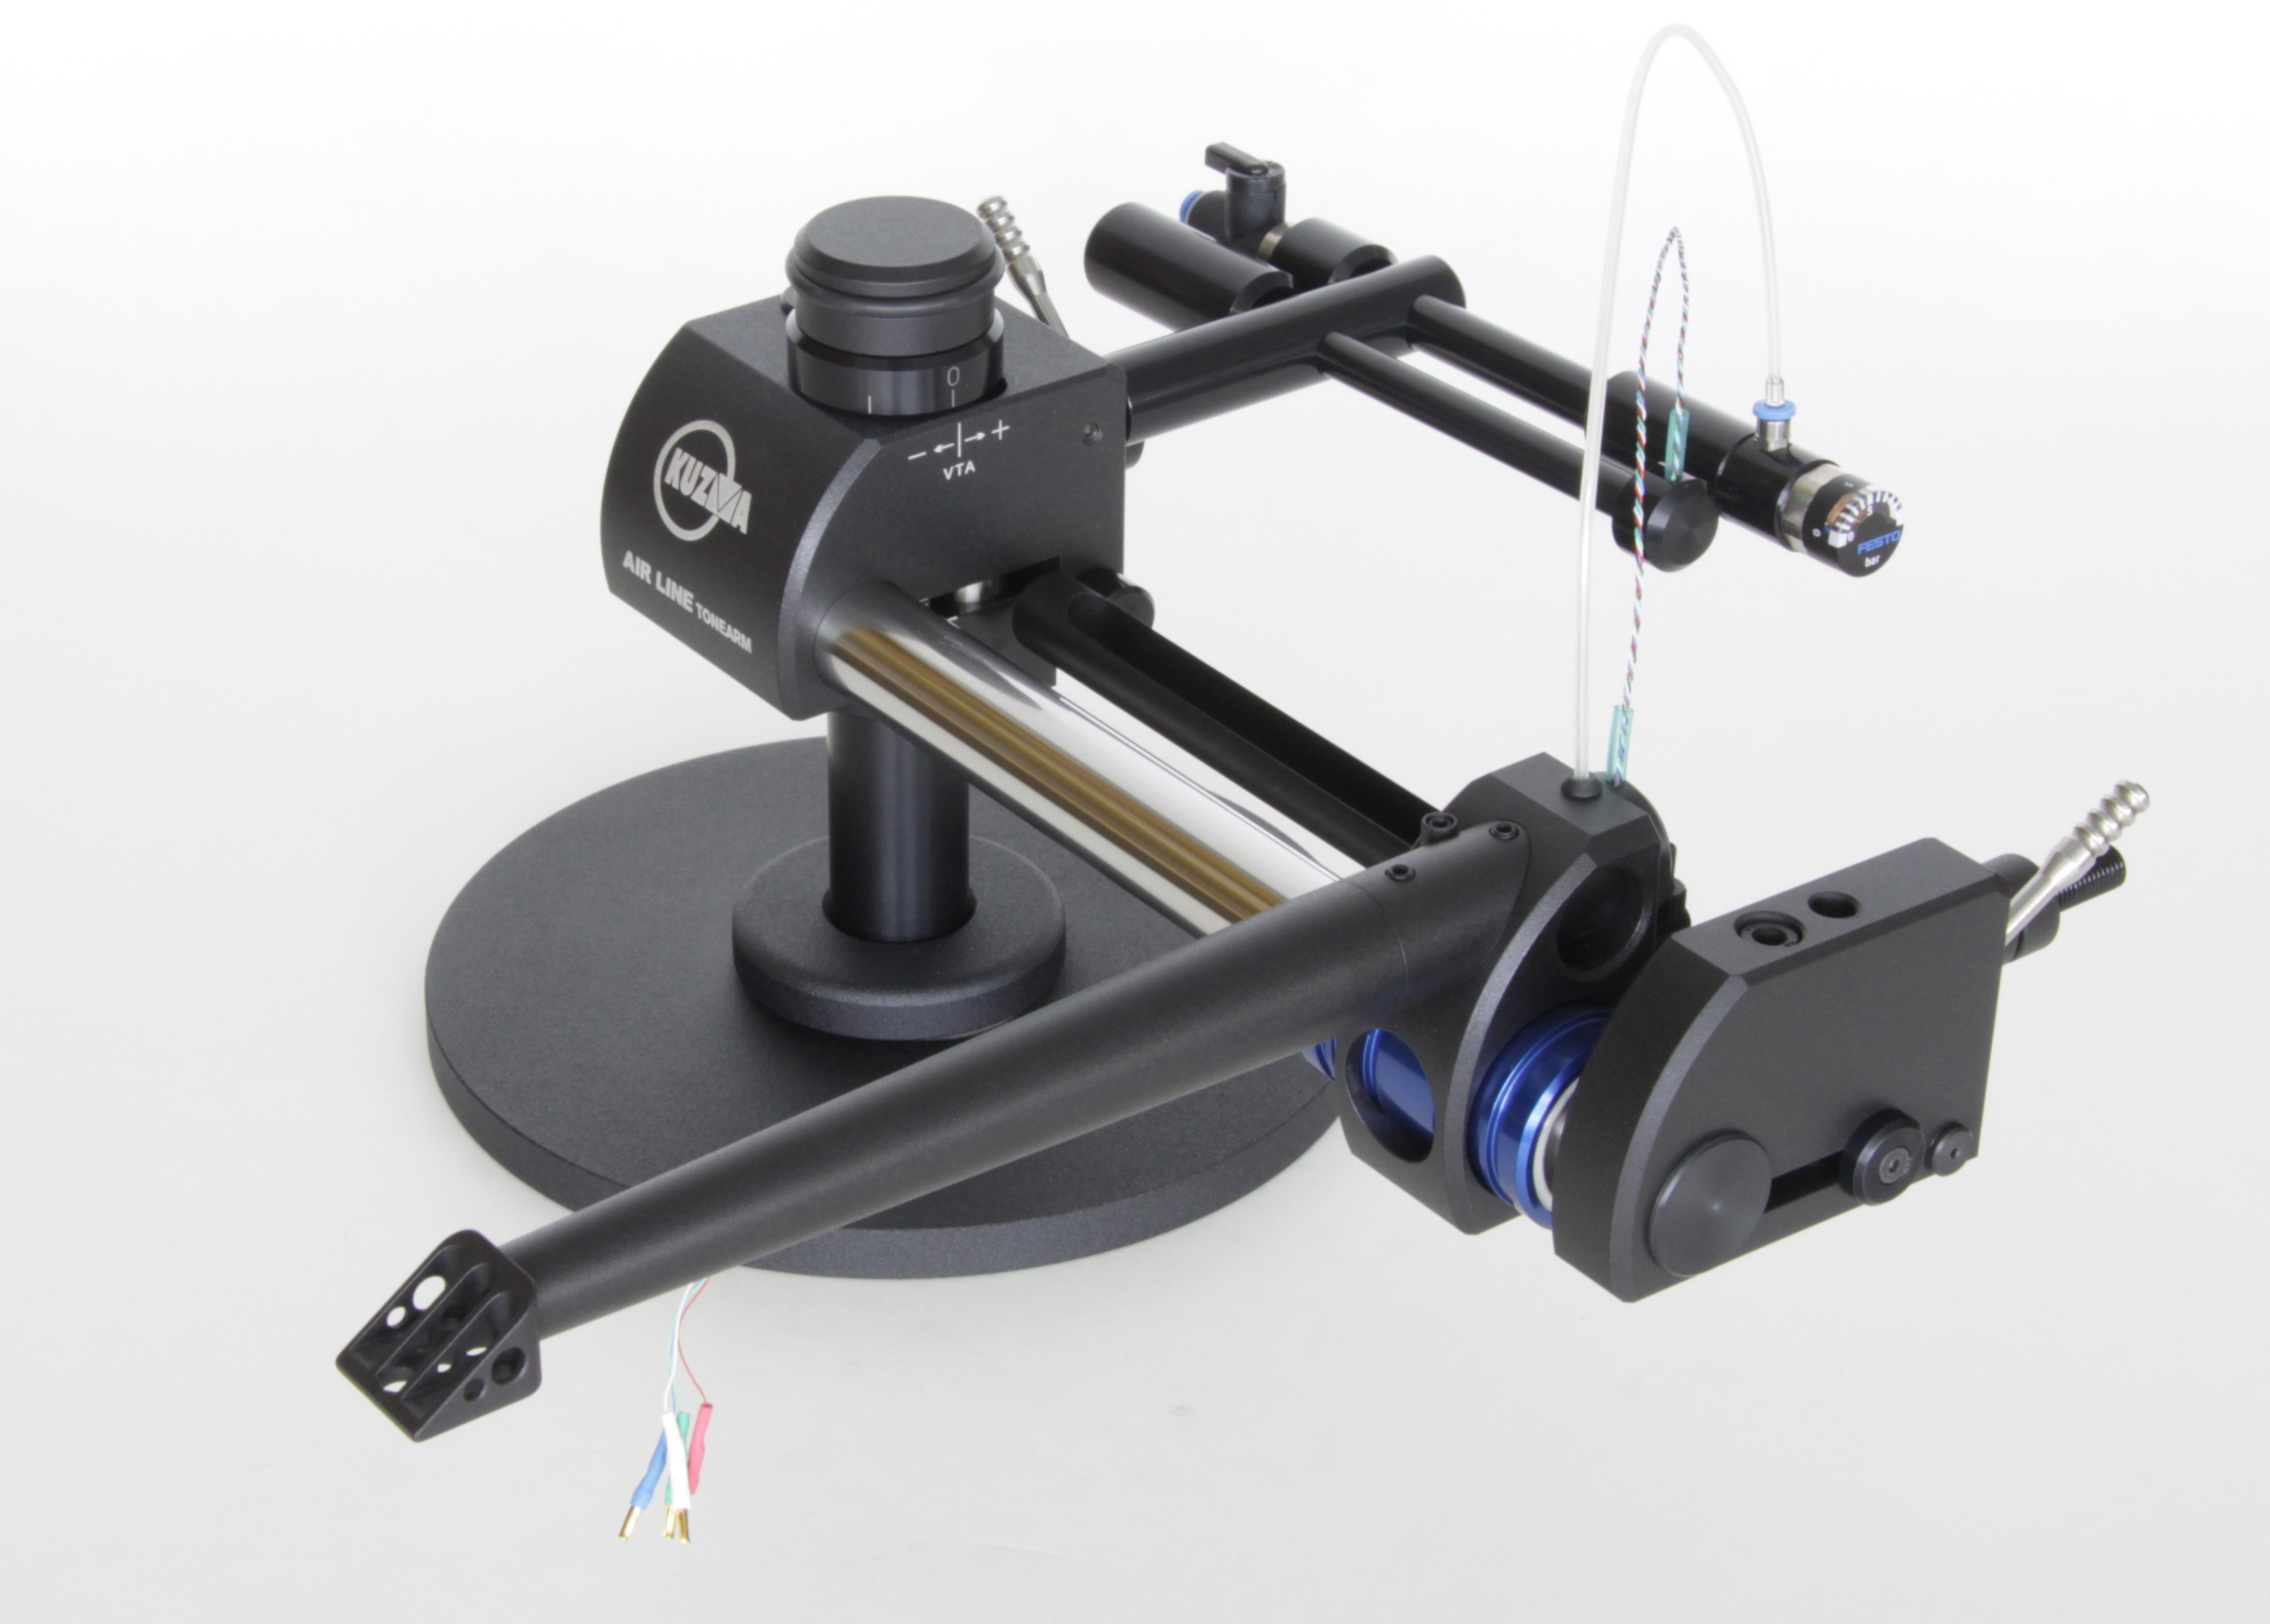 Air Line - Kuzma Professional Turntables, Tonearms and